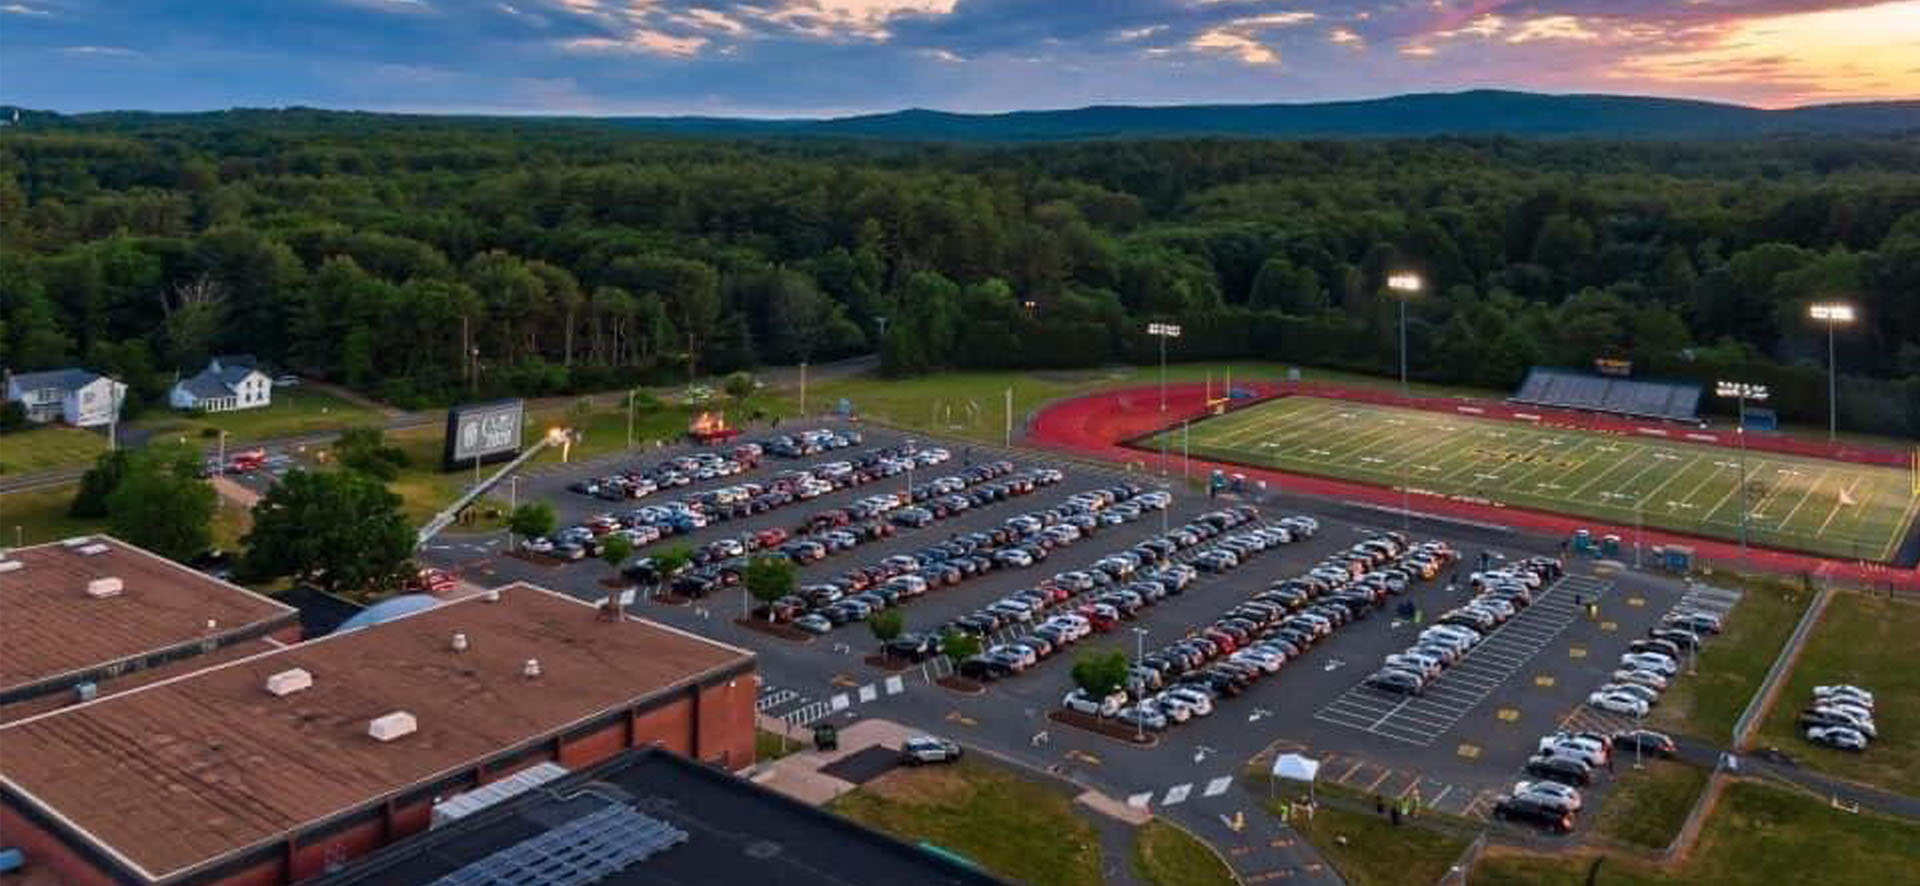 Aerial view of athletic field and parking lot